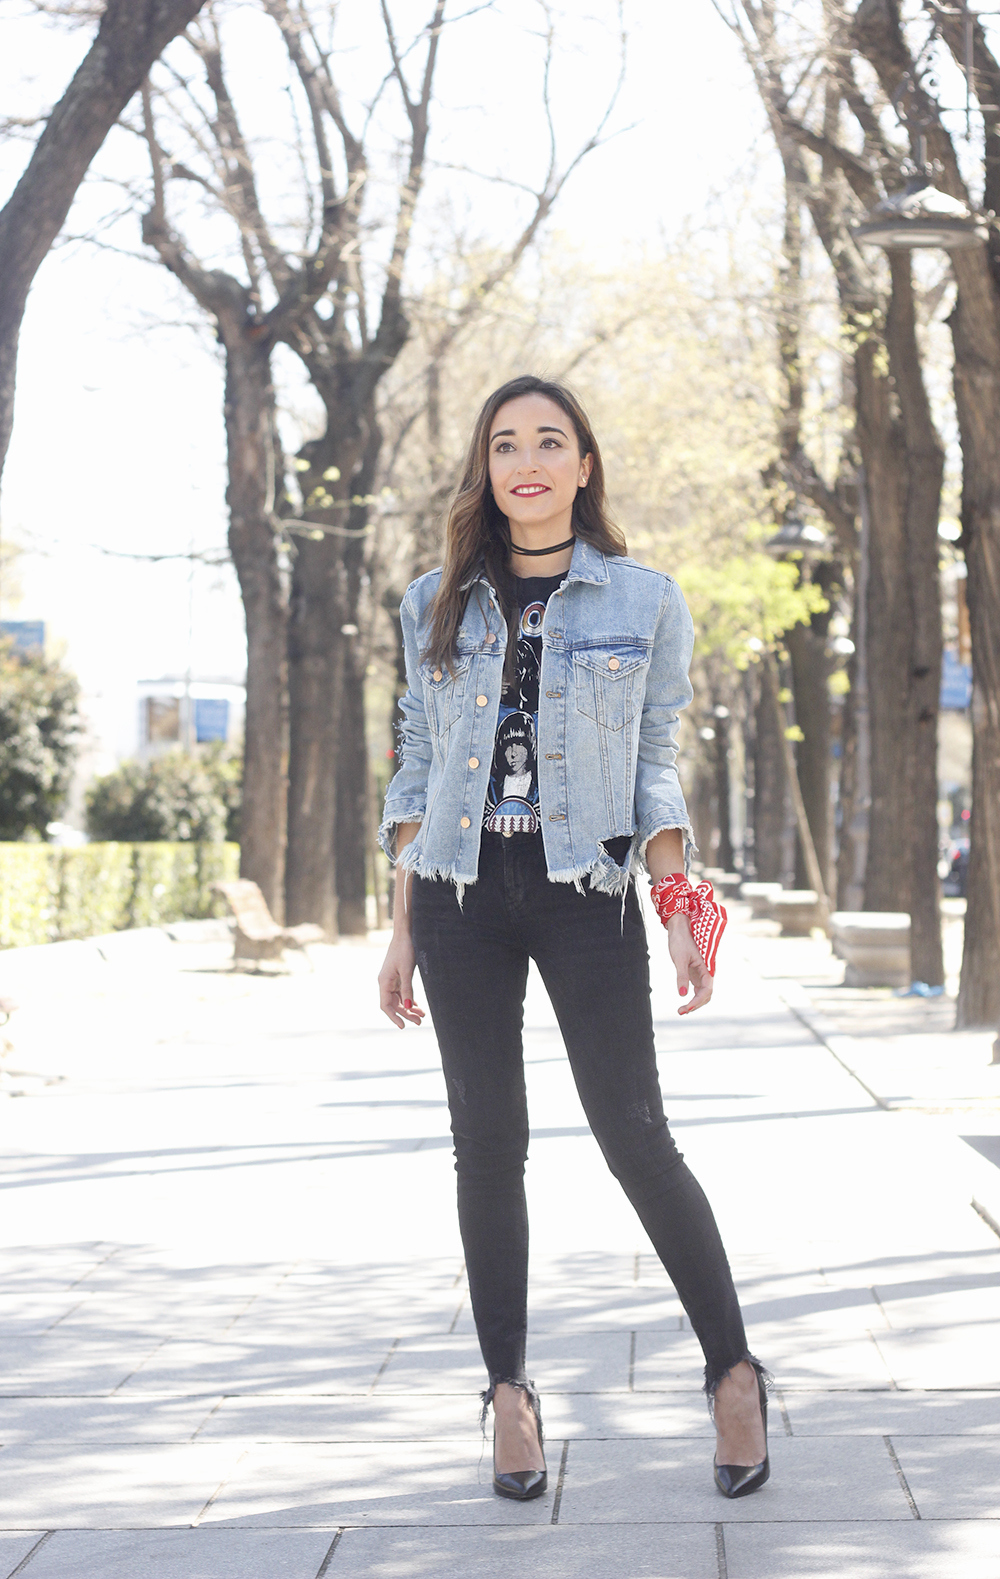 Ripped denim jacket black jeans ramones t-shirt heels style outfit fashion03